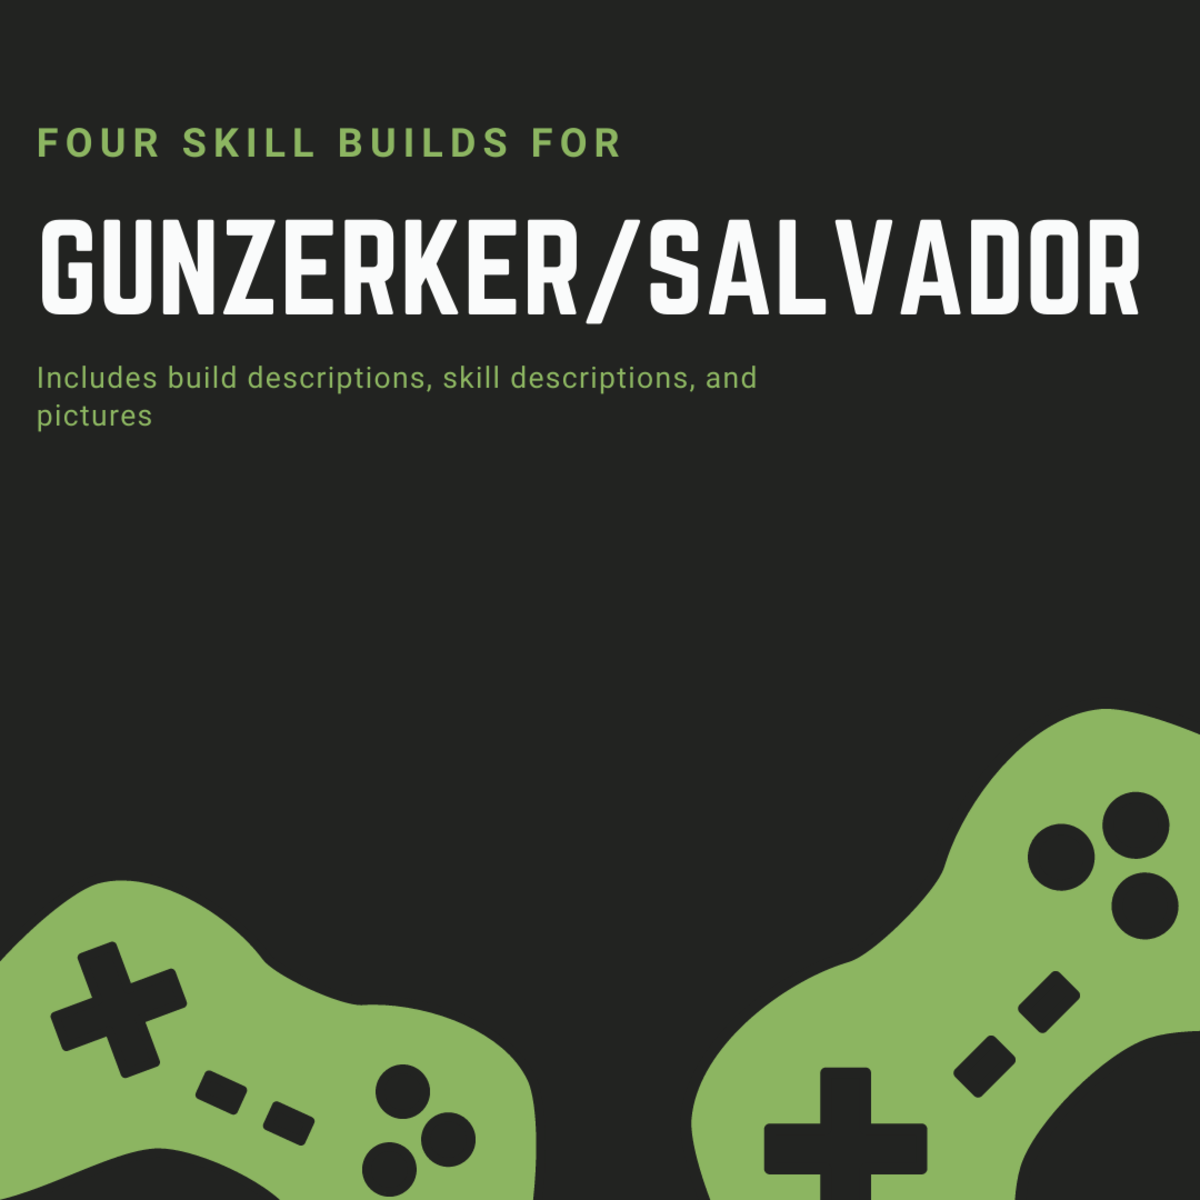 Salvador is especially fun to play if you have a strategy and you know what kind of skill sets you want to develop. Here are my own favorite builds for Salvator.